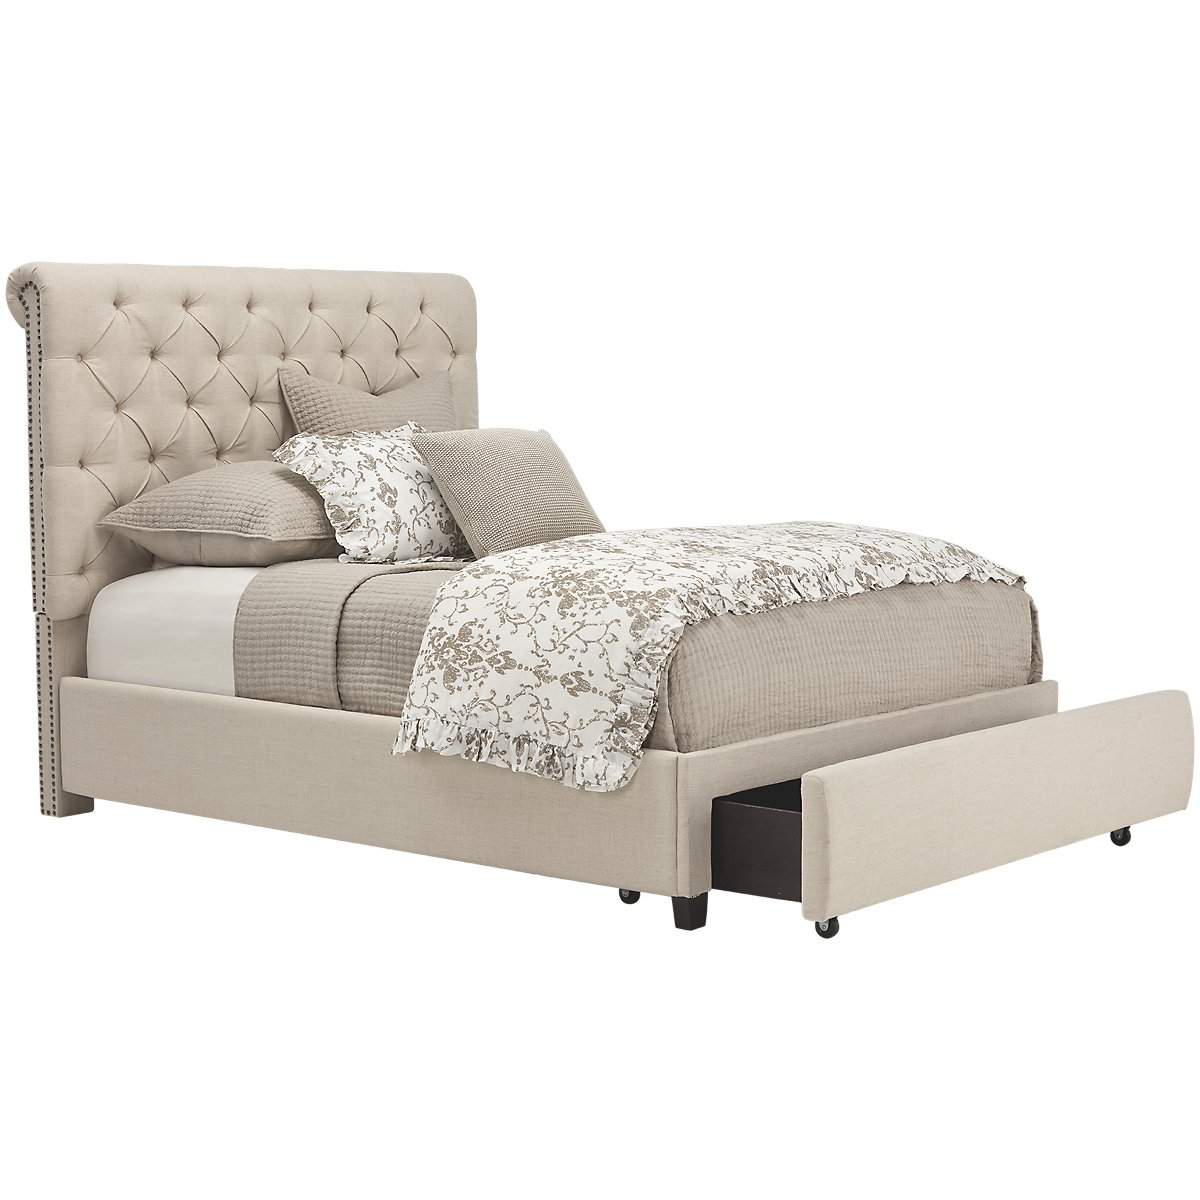 City Furniture Durham Beige Upholstered Platform Storage Bed